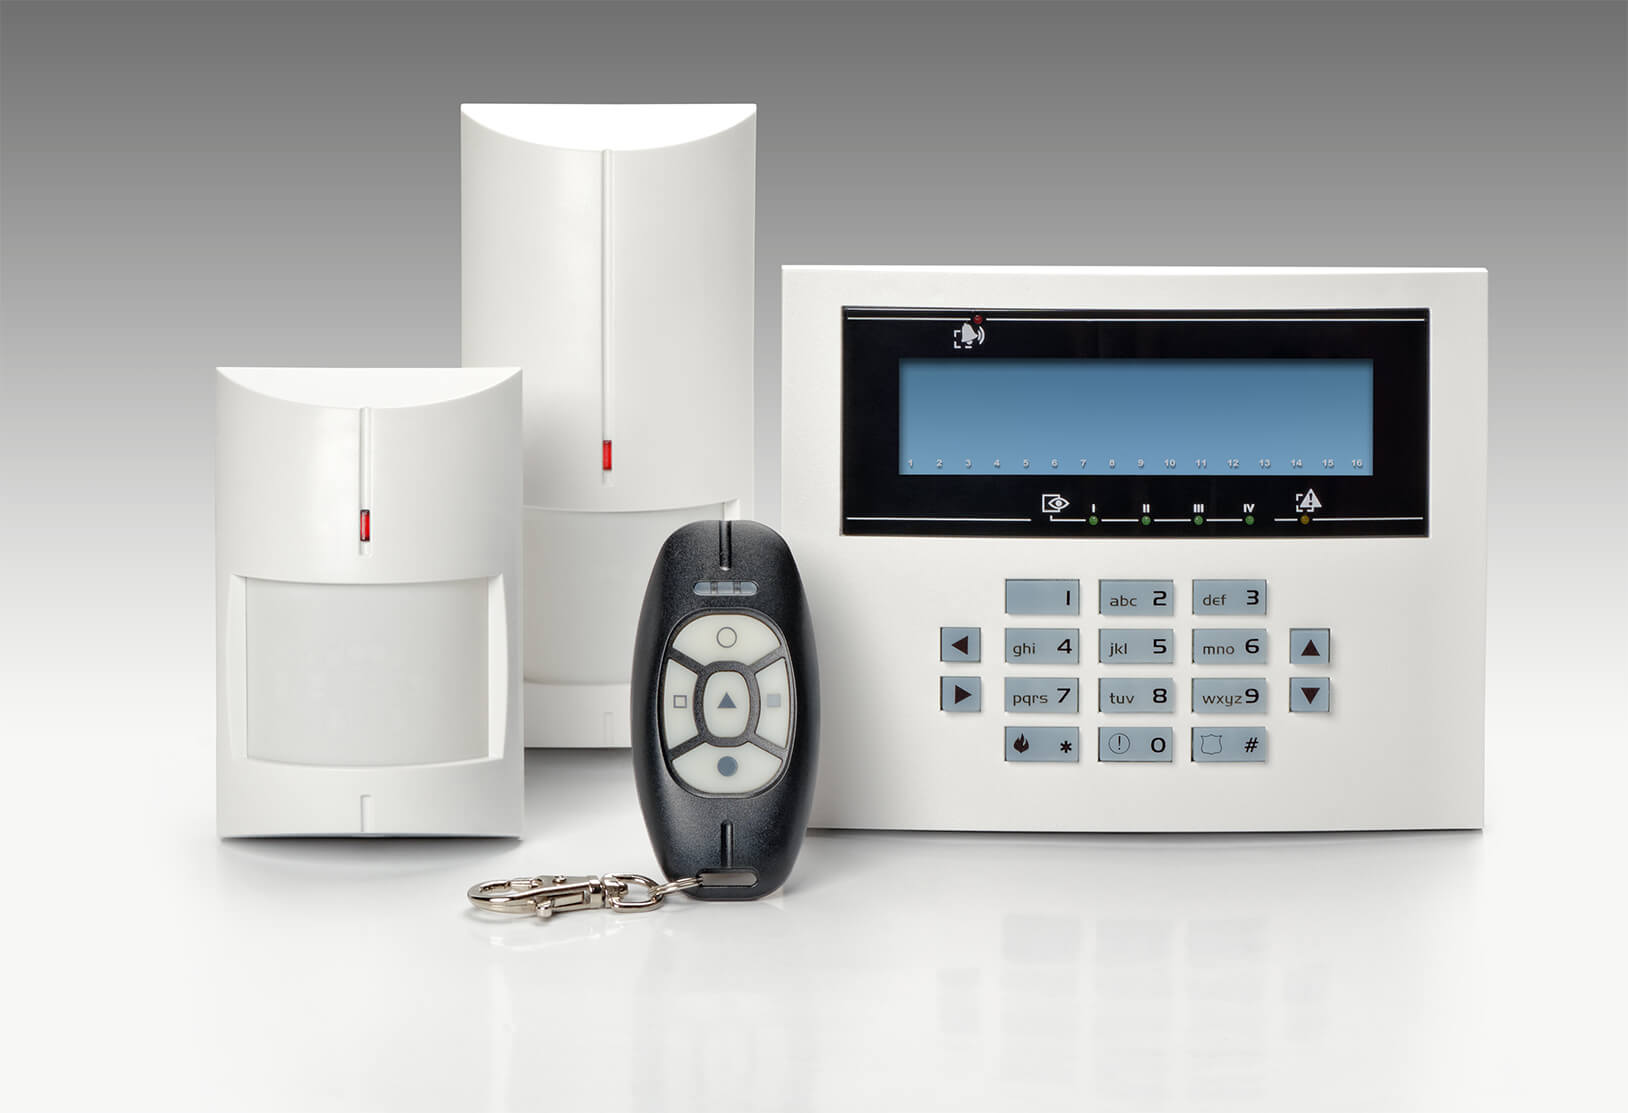 Business & Residential NACOSS Approved Burglar Alarms In Paddington W10 - Local Paddington W10 security company.Call 02078872244 - Dedicated to Safety & Security. Companies, shops and homes ..